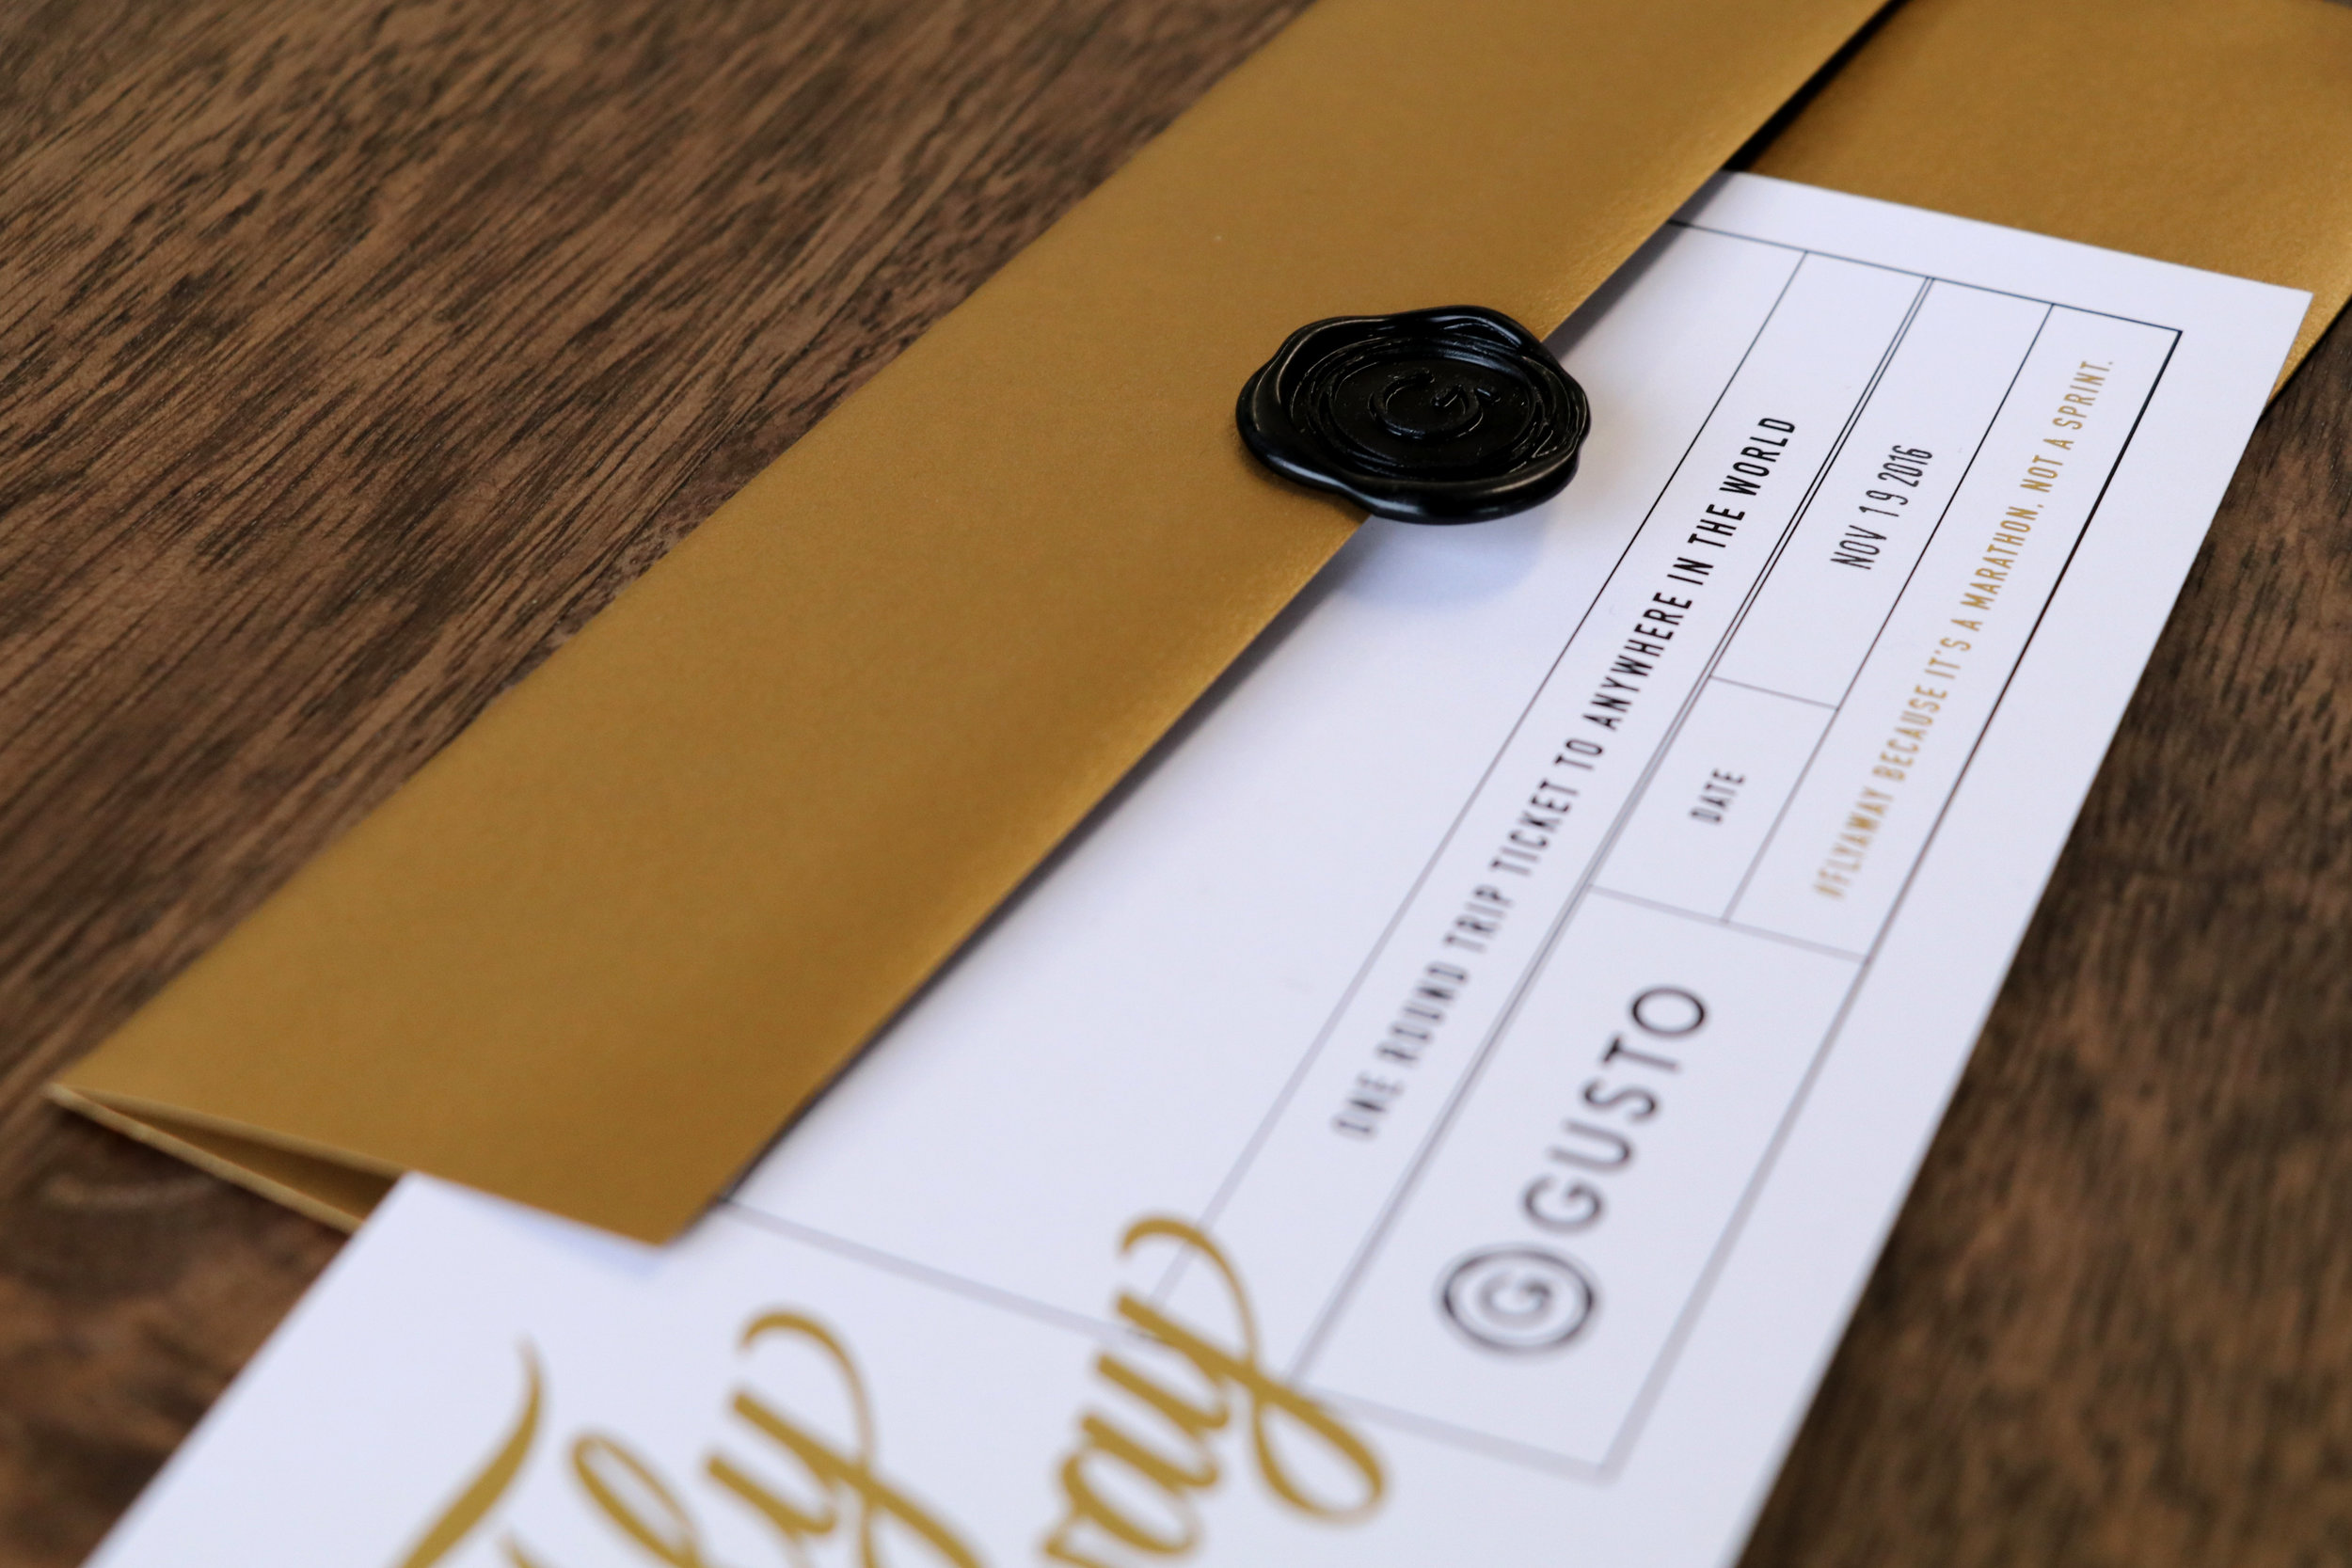 Each ticket comes in a gold envelope with a Gusto branded wax seal.